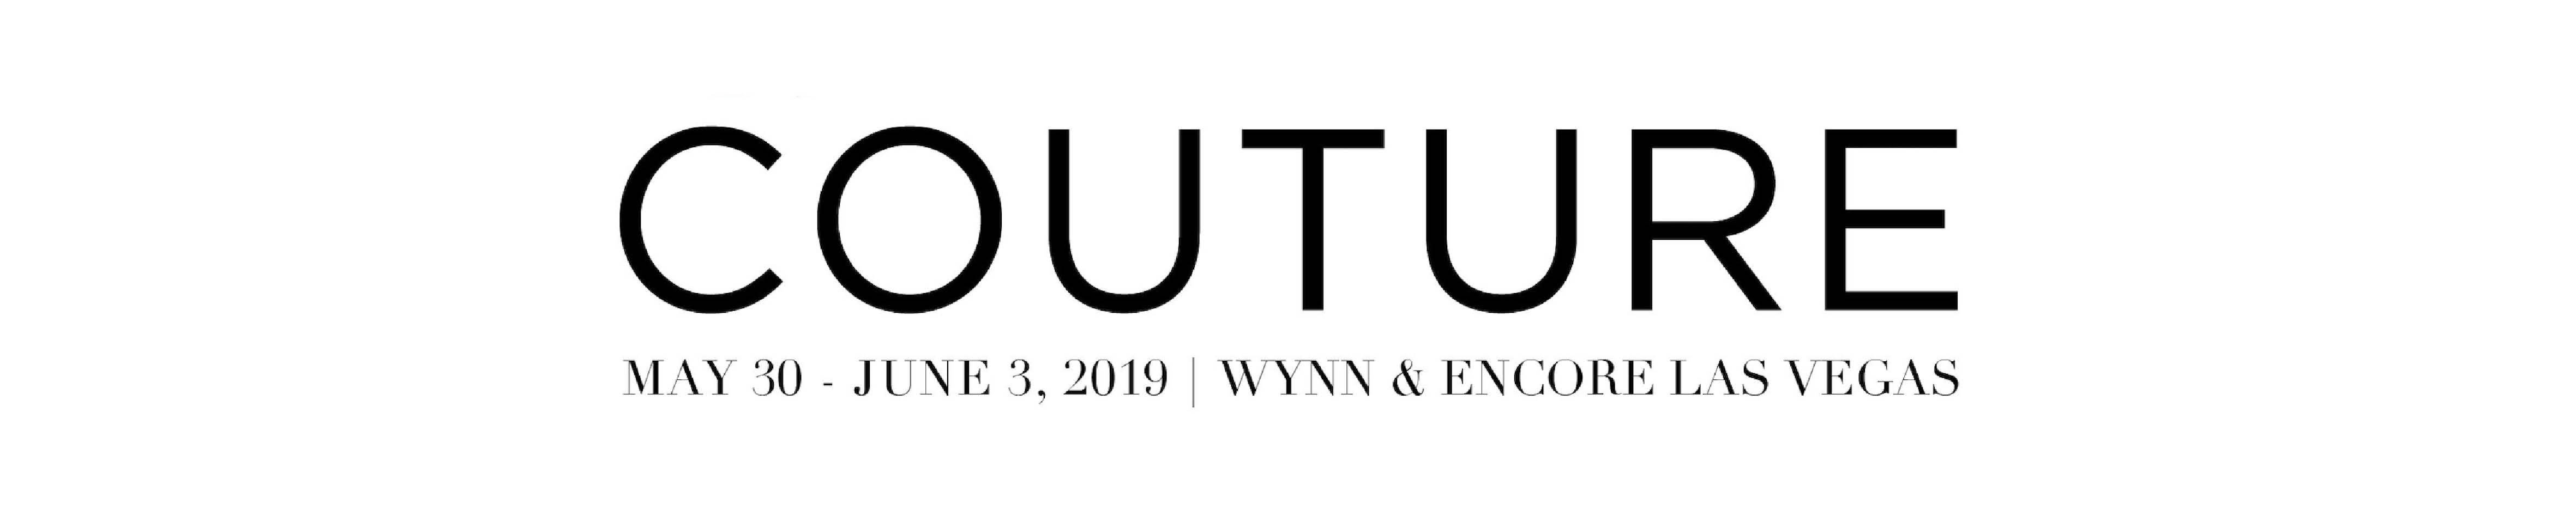 COUTURE 2019 logo small